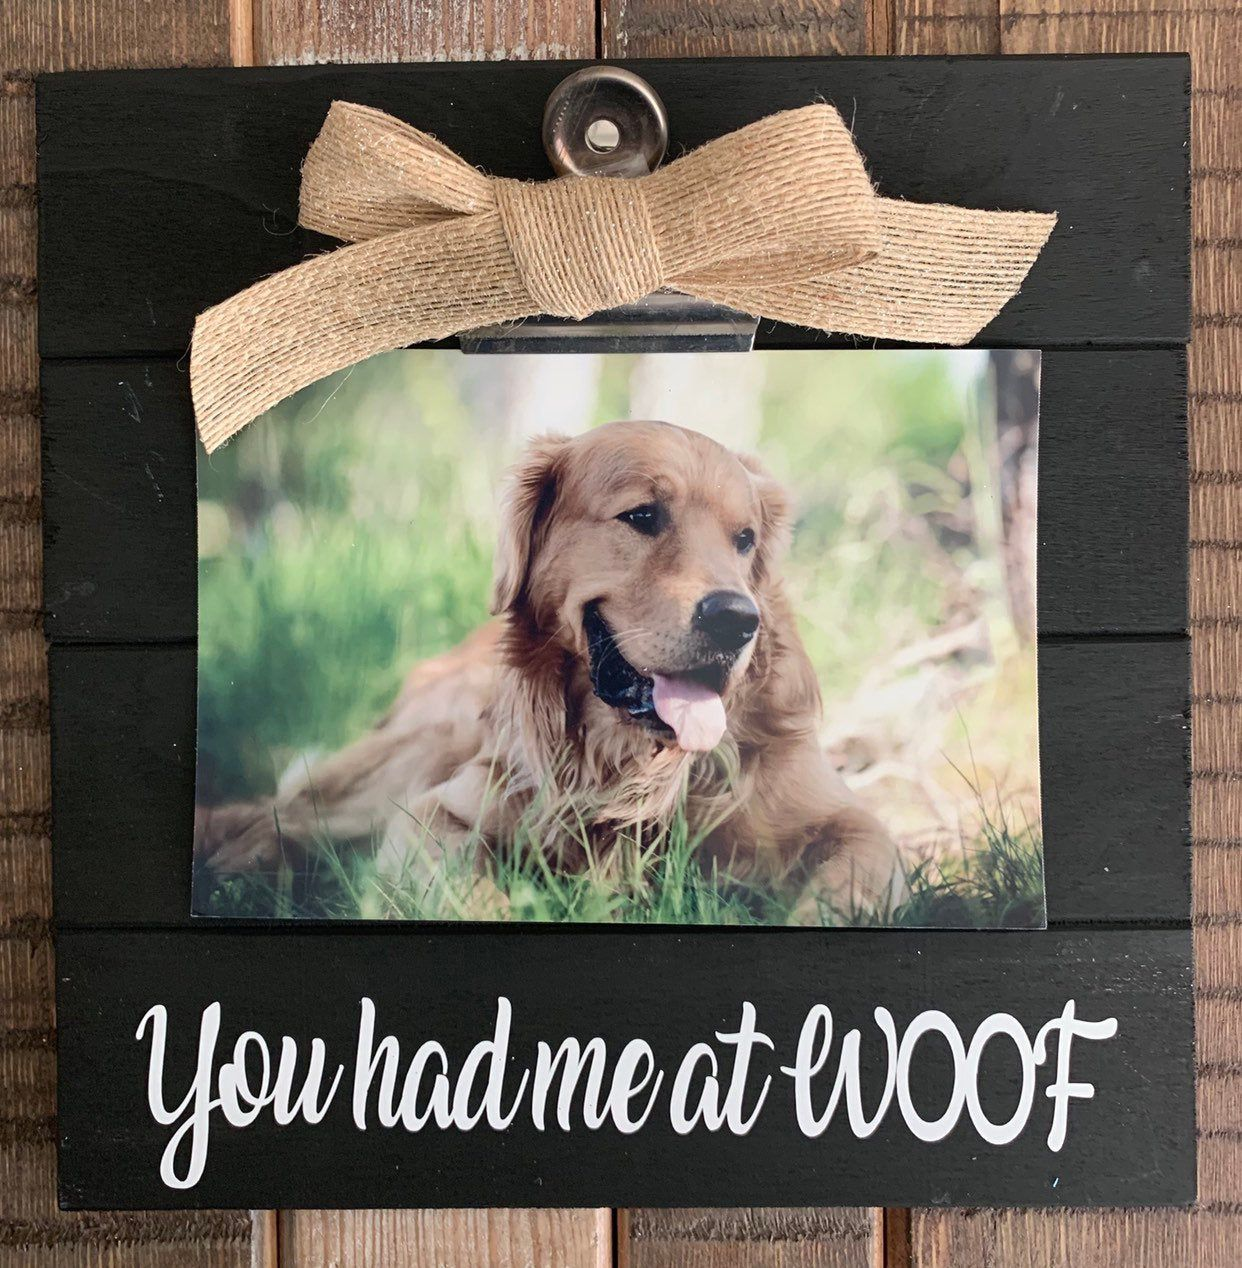 Dog Lover Frame You Had Me At Woof Wooden Picture Frame